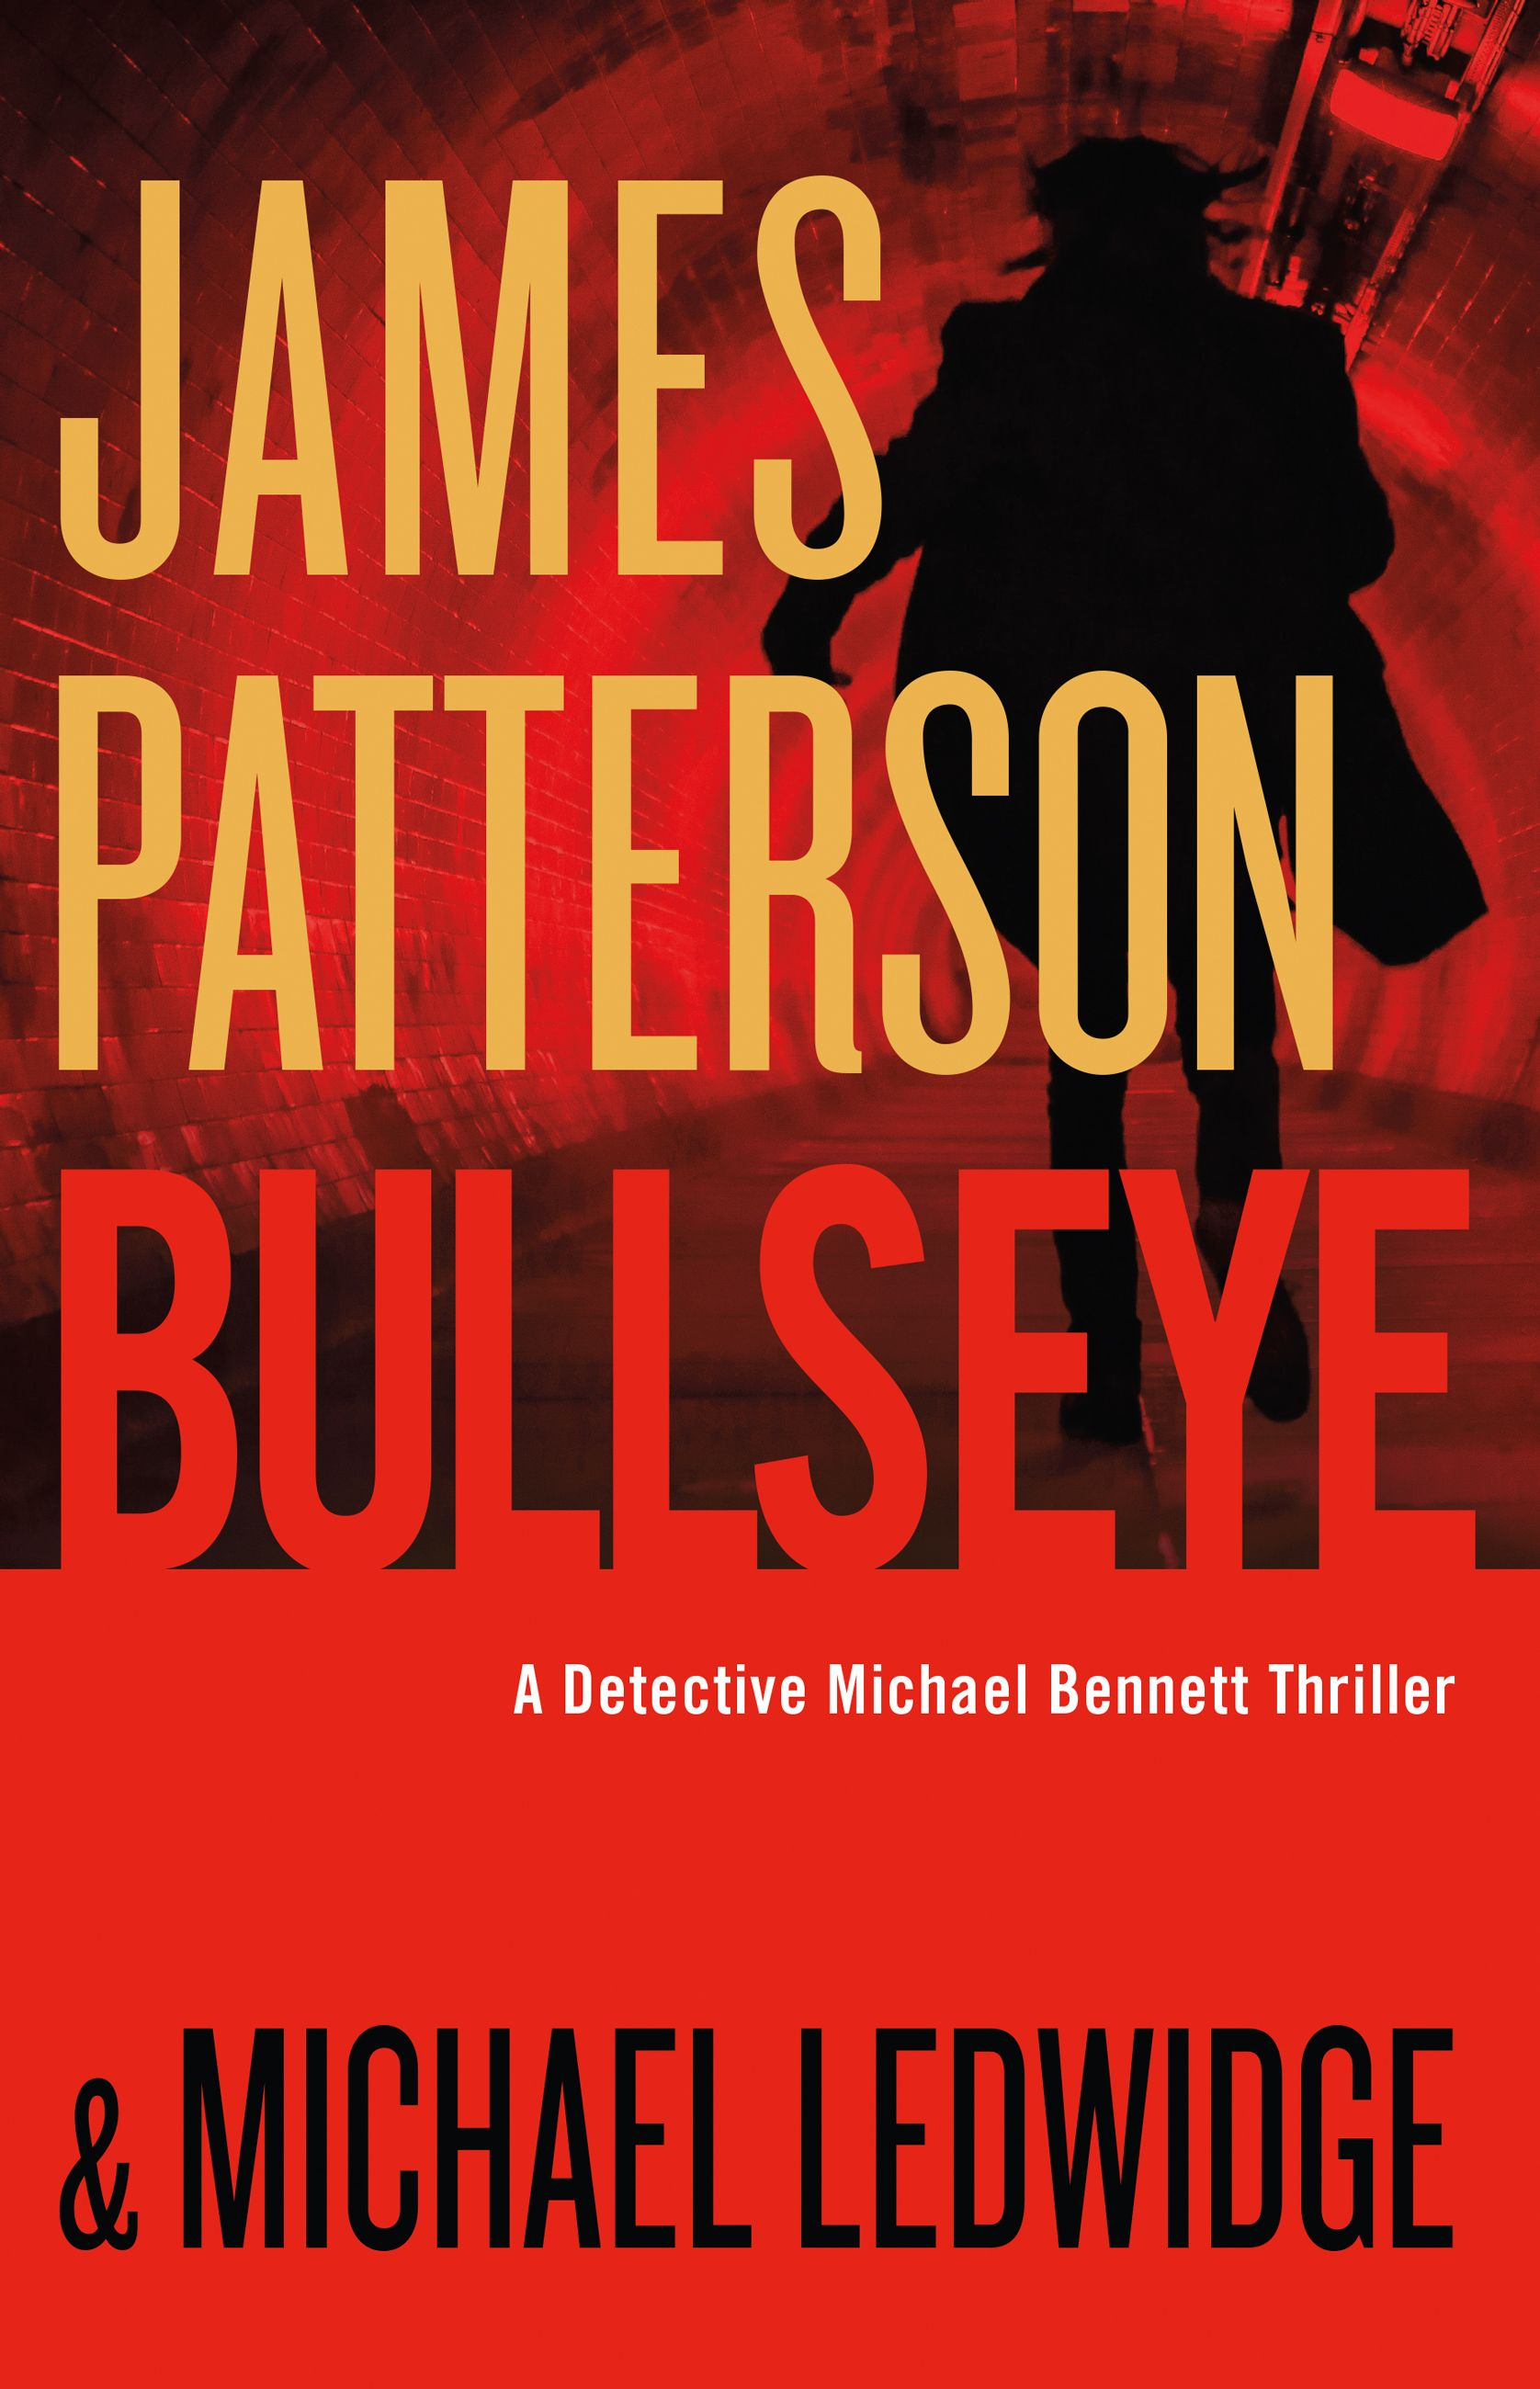 Bullseye / Michael Ledwidge & James Patterson.  Snow blankets the avenues of Manhattan's exclusive Upper West Side. The storm is the perfect cover for a fashionable, highly trained team of lethal assassins as they prowl the streets, hunting their prey. But their first hit is simply target practice. Their next mission may very well turn the Cold War red-hot once again. Stepping directly into the line of fire, the president of the United States is in New York for a summit at the United…